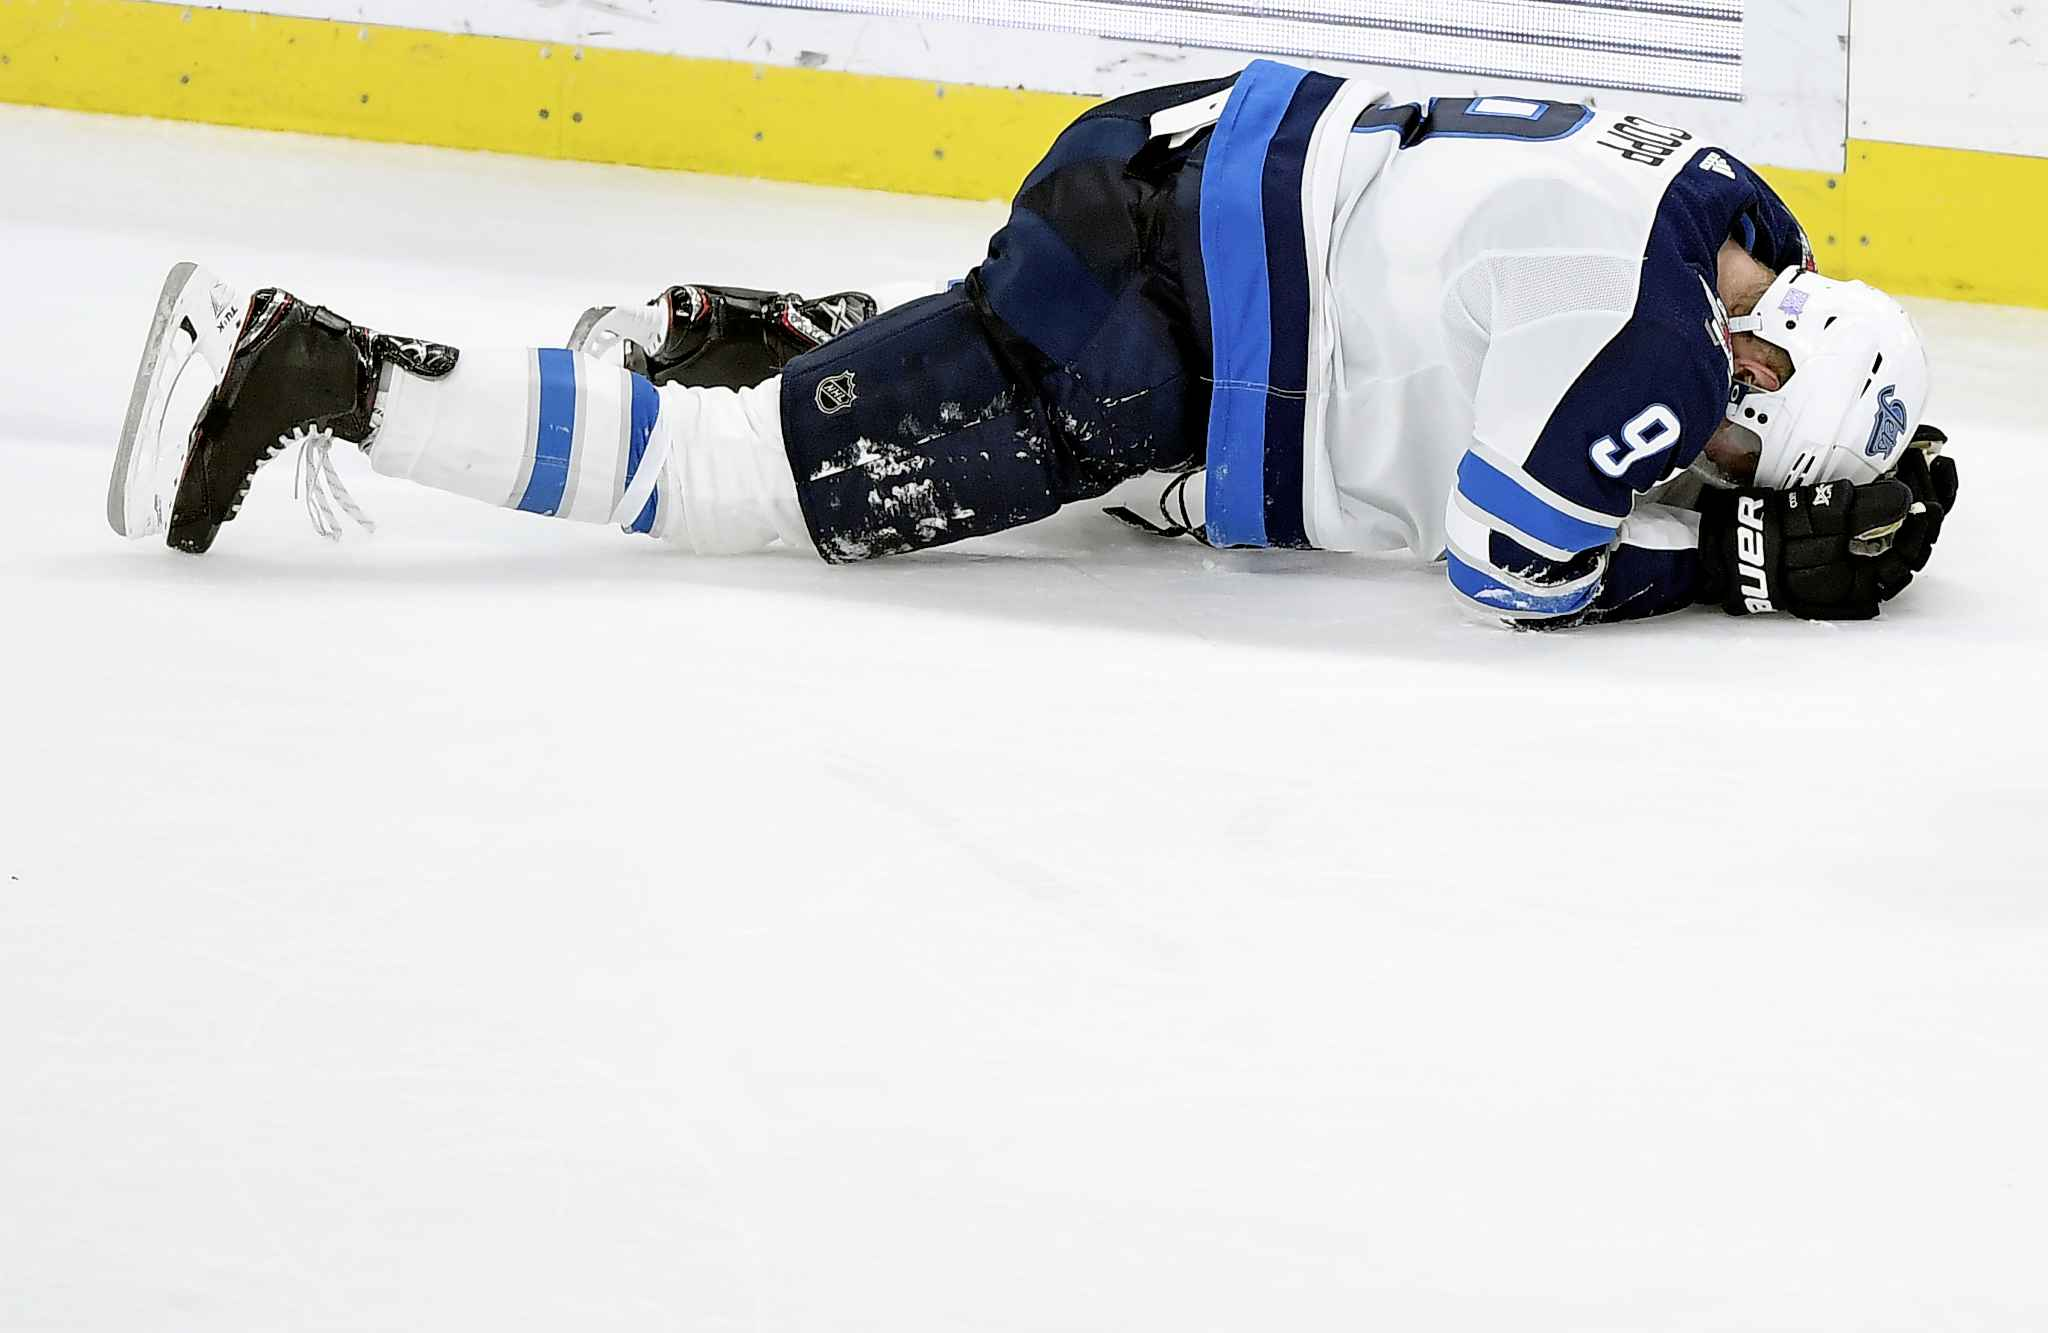 Winnipeg Jets's Andrew Copp (9) lays on the ice after a check by Minnesota Wild's J.T. Brown (23), not pictured, during the third period of an NHL hockey game Friday, Nov. 23, 2018, in St. Paul, Minn. Copp left the game. The Wild won 4-2. (AP Photo/Hannah Foslien)